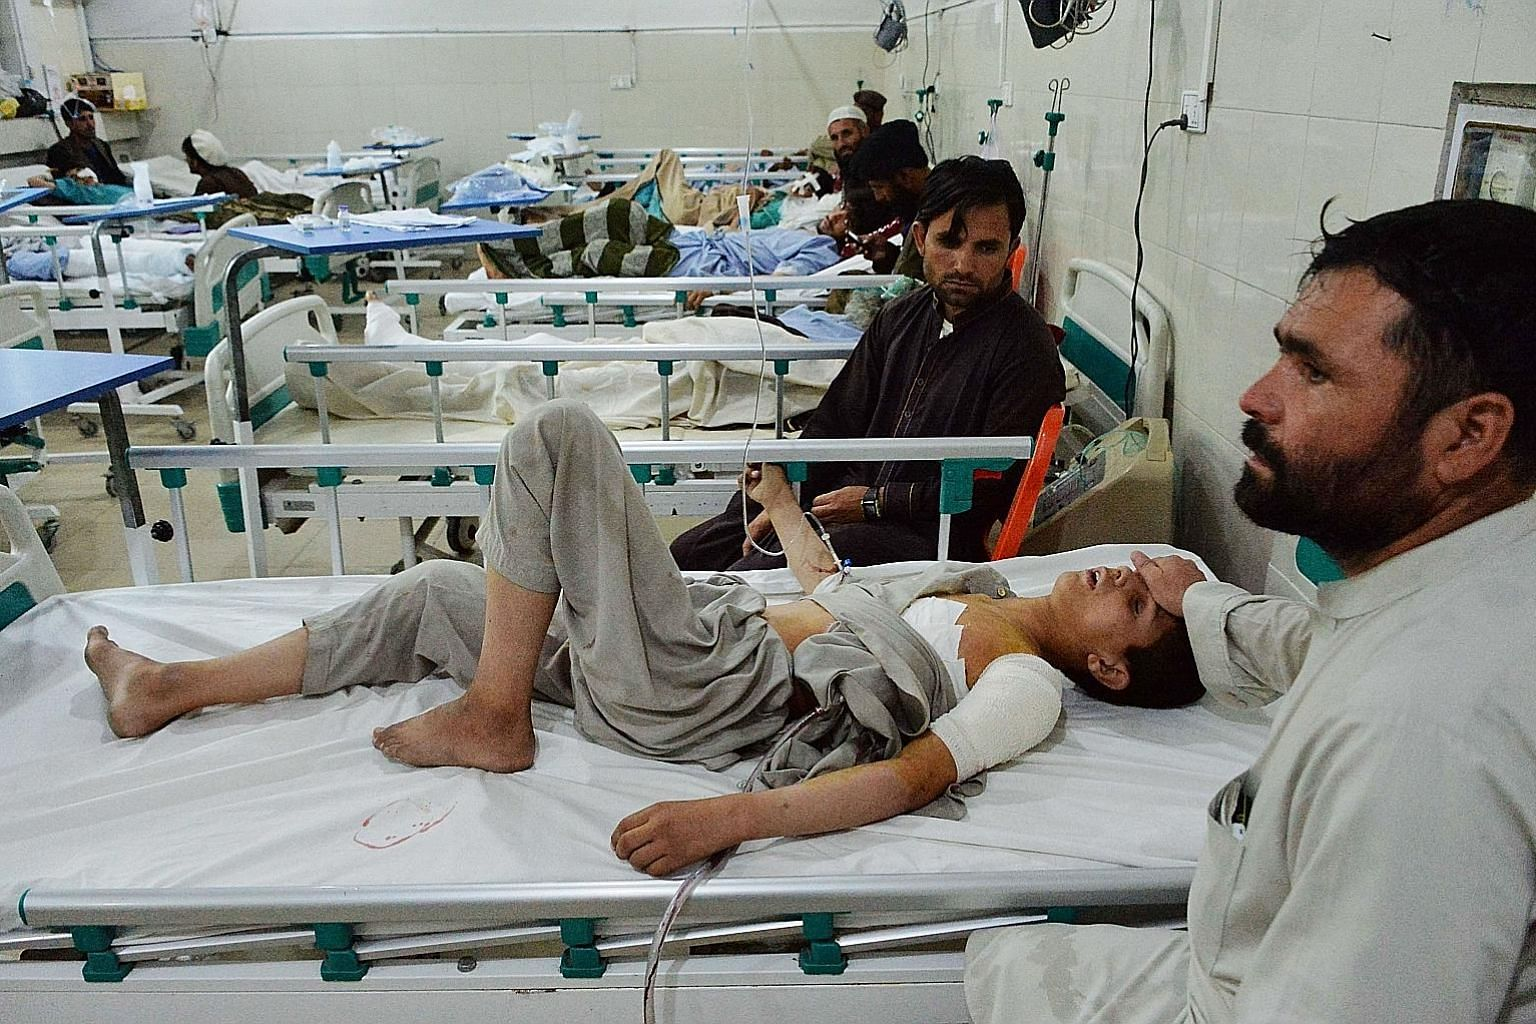 An Afghan victim receiving medical treatment in hospital after a suicide bomb attack in Jalalabad on Thursday. There was at least one child among the fatalities, while three other minors were wounded.